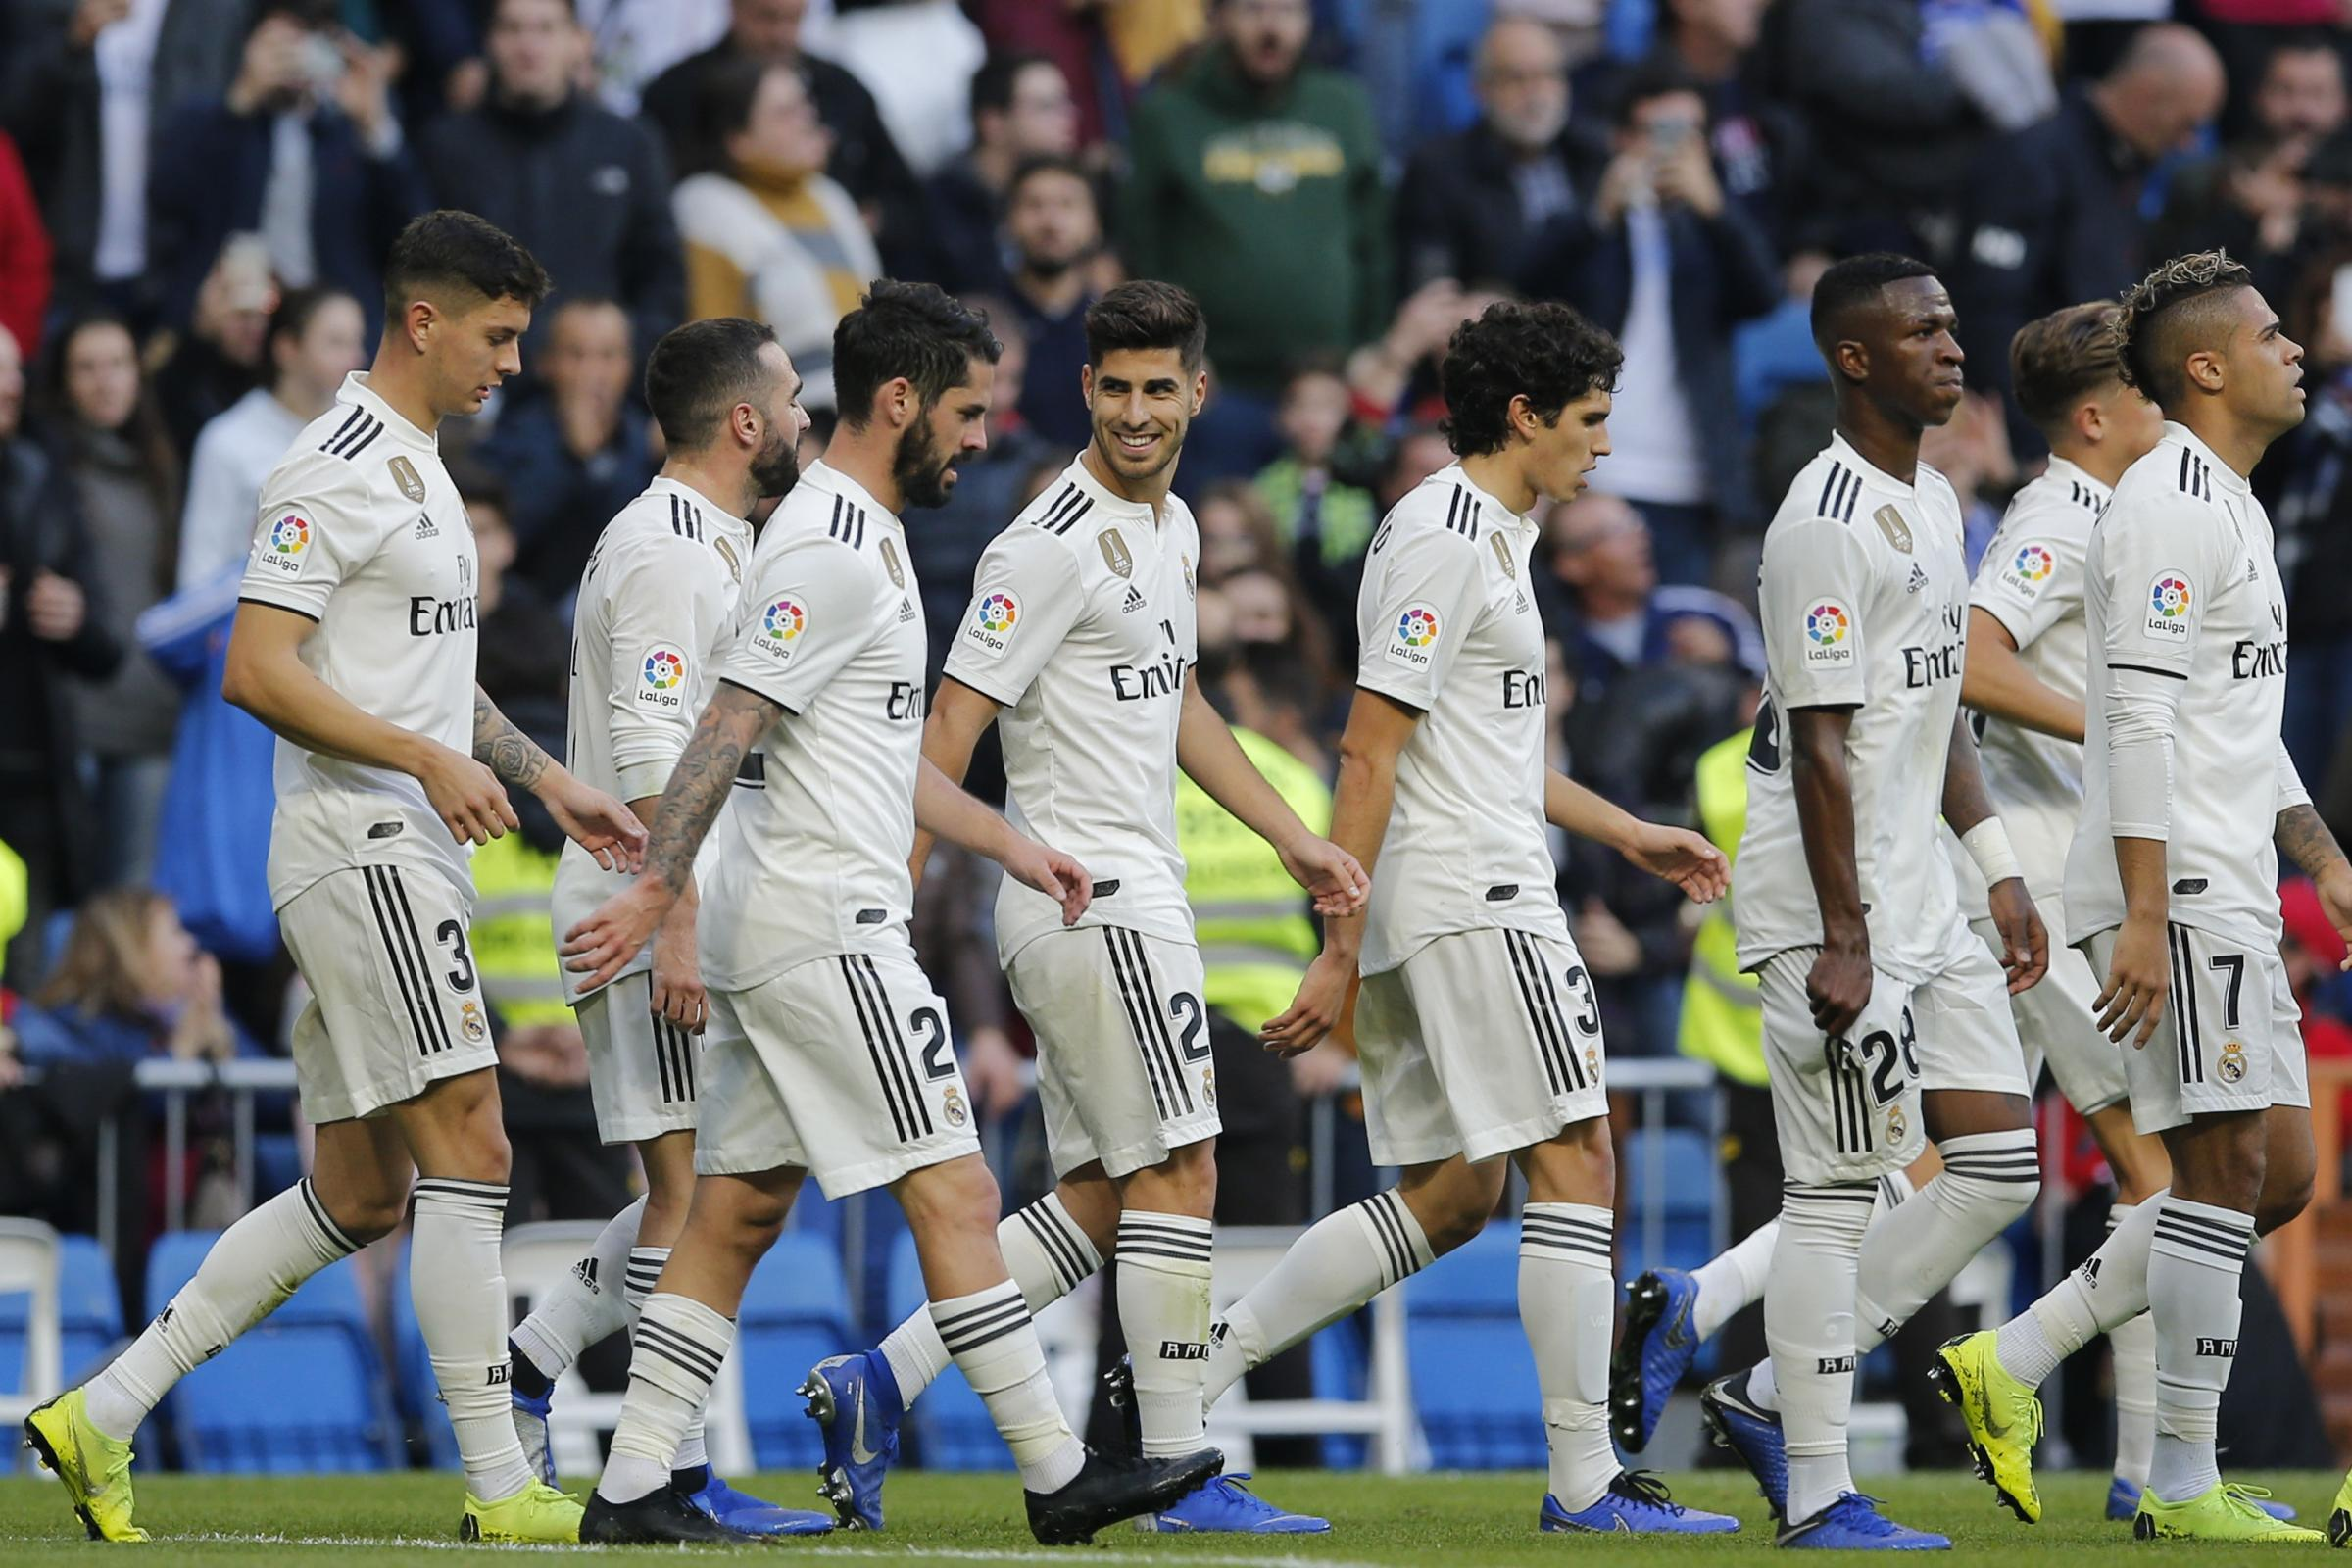 Real Madrid sealed their progression with a thrashing of Melilla at the Bernabeu